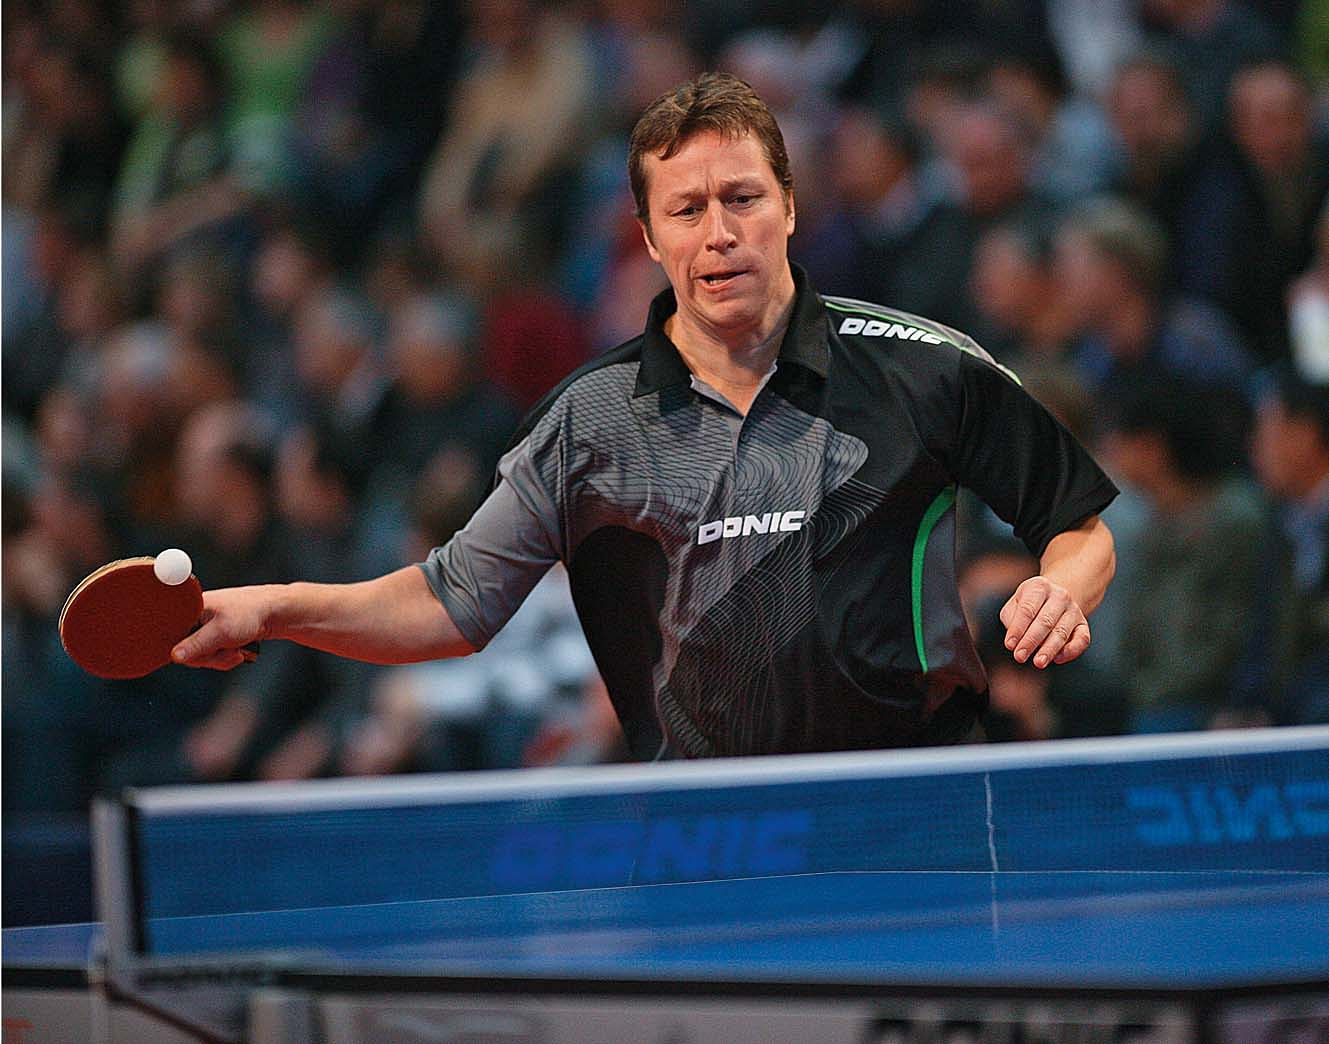 Should there be another Jan Ove Waldner to beat the Chinese in table tennis?